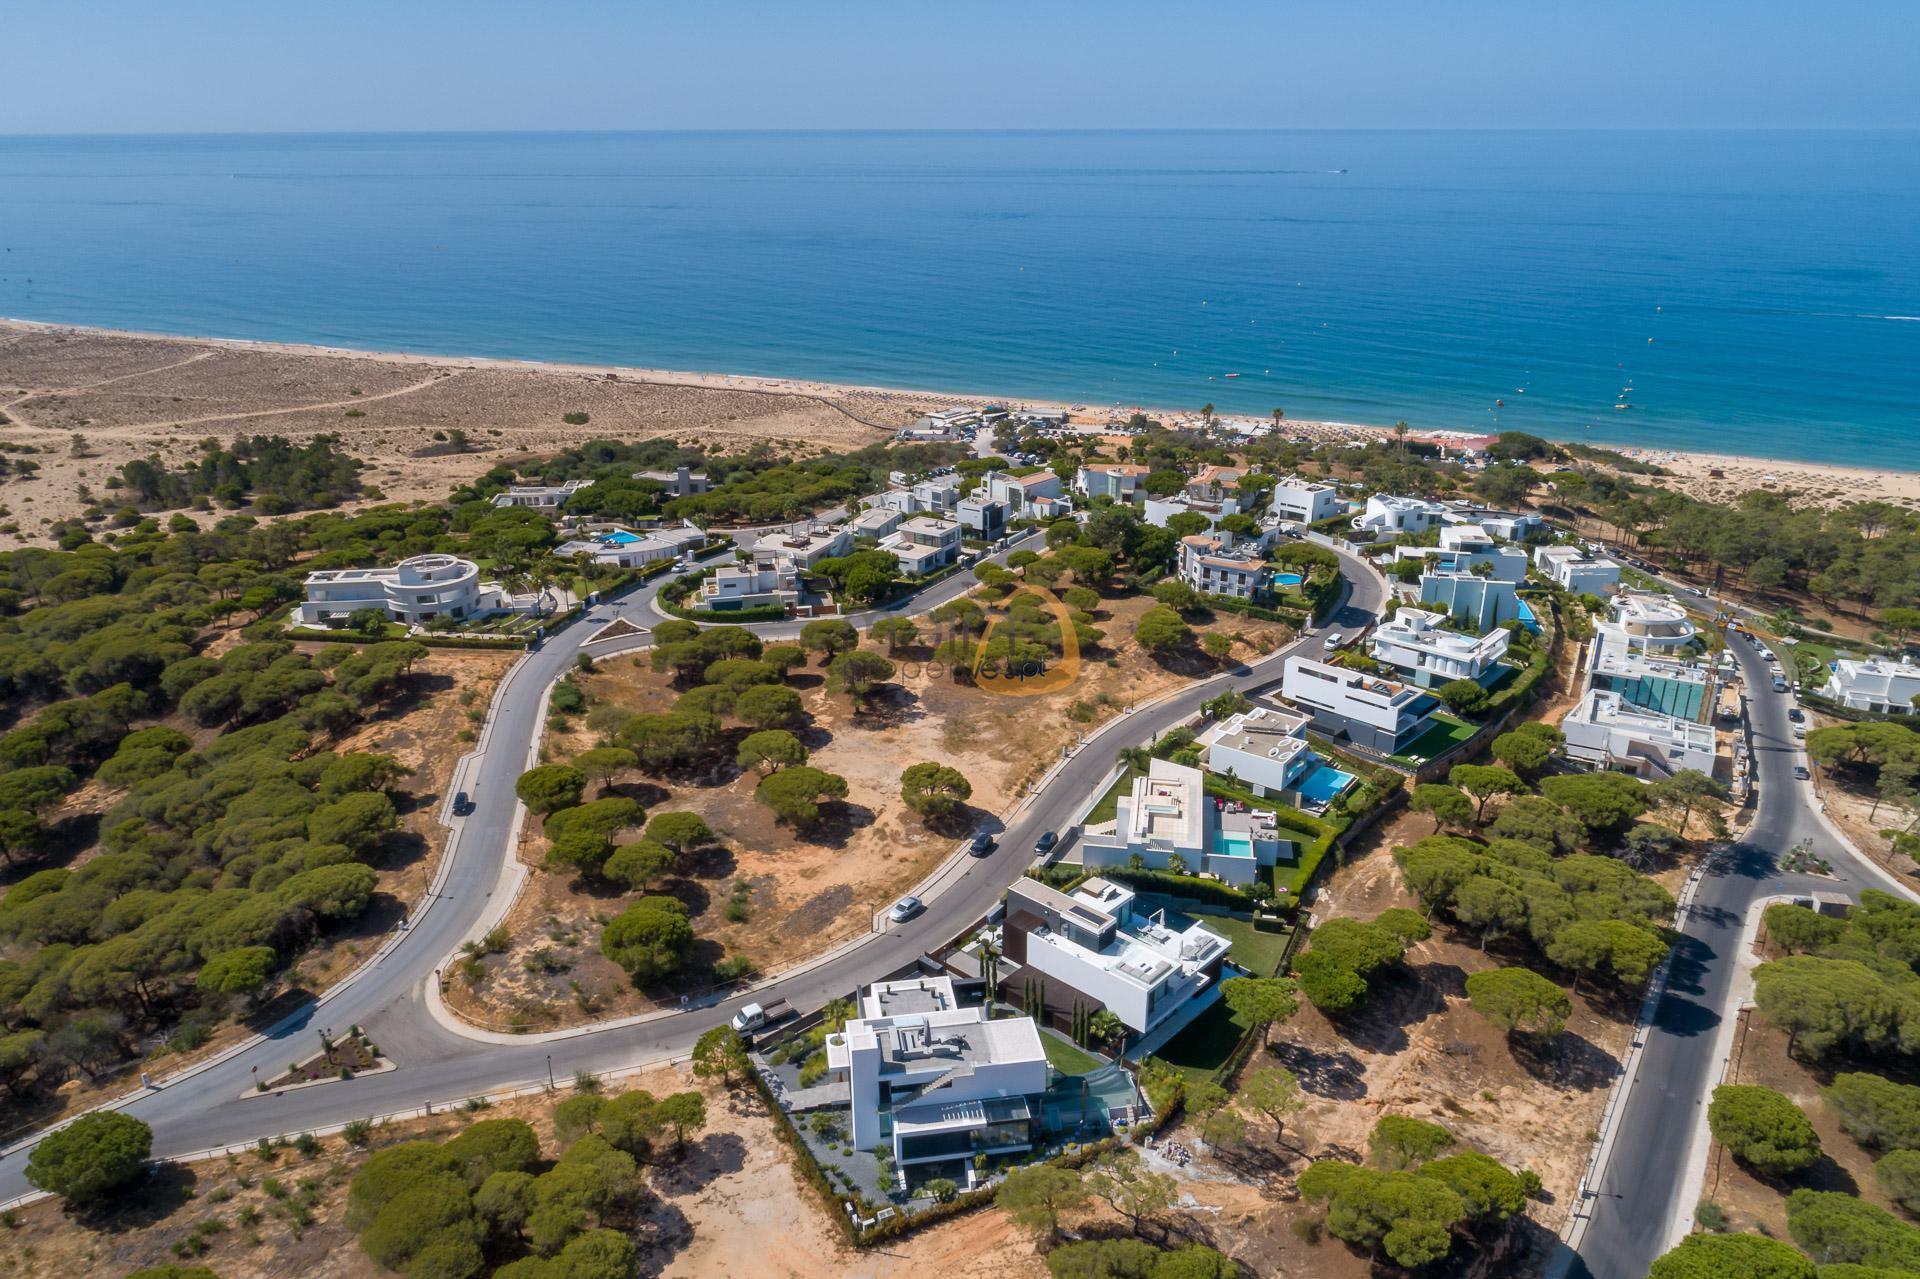 land-plot-villa-in-vale-do-lobo-golden-triangle-algarve-portugal-real-estate-property-mp141vdl-0